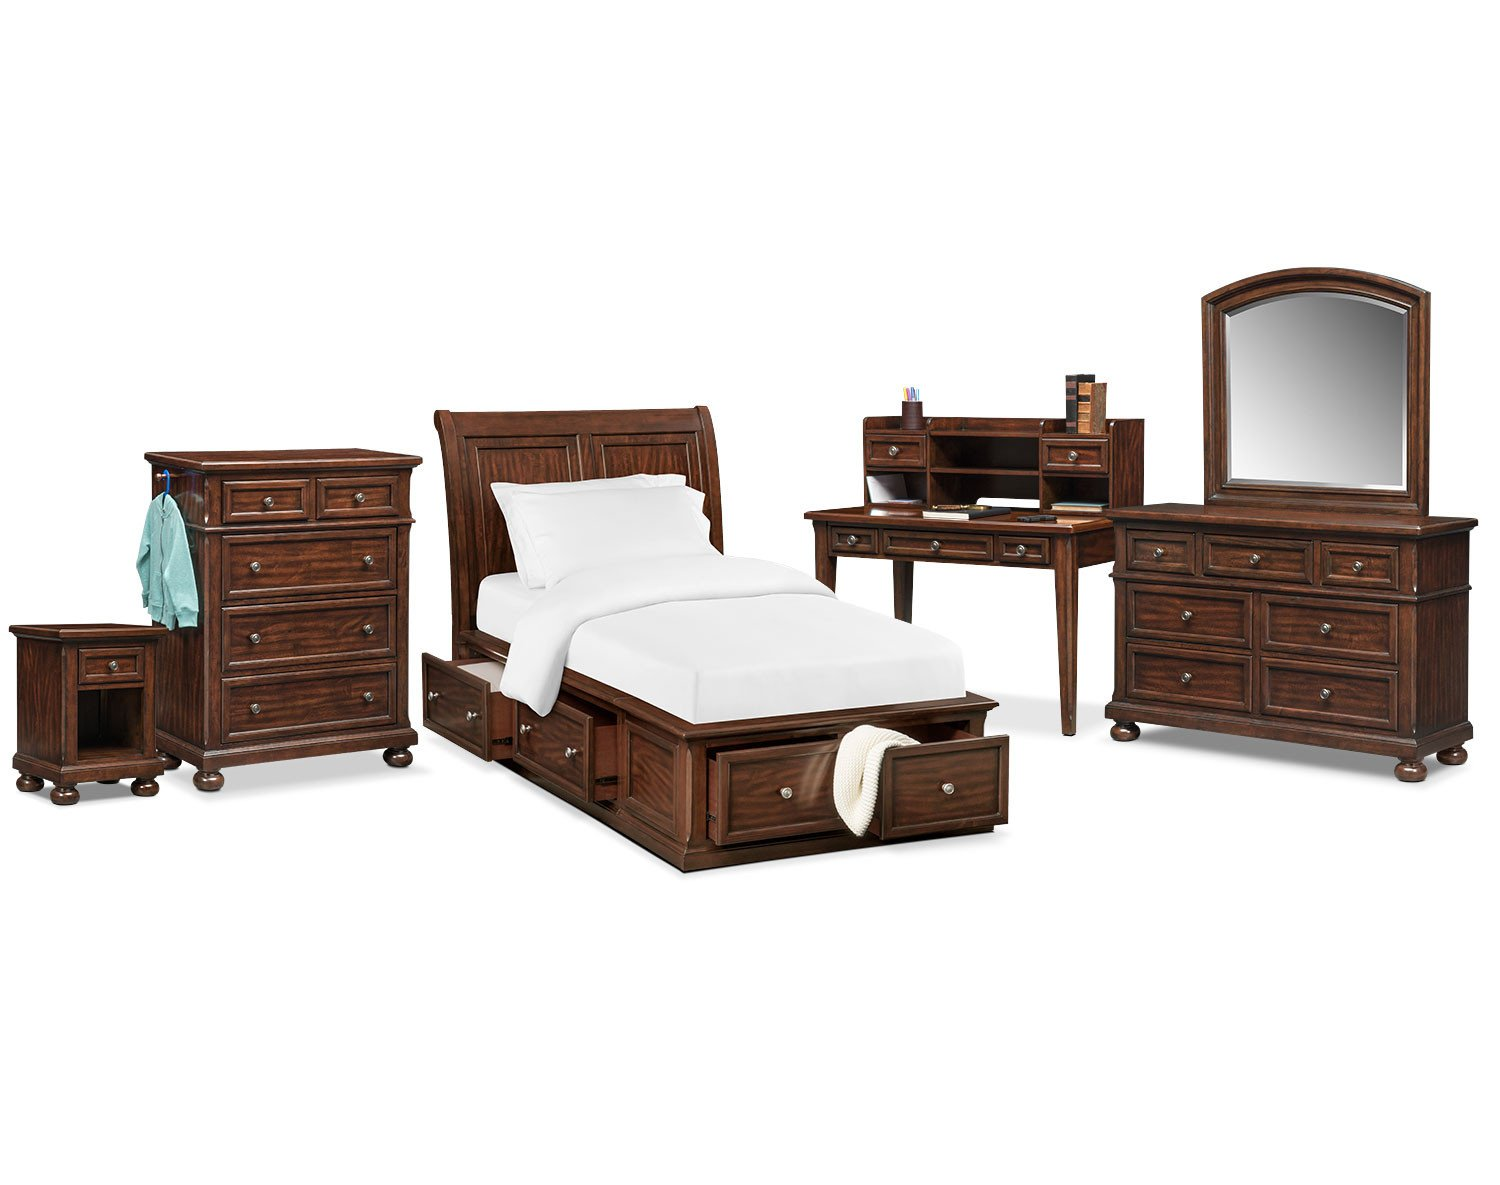 Value City Bedroom Set On Sale Best Of Youth Furniture – Fashion Dresses